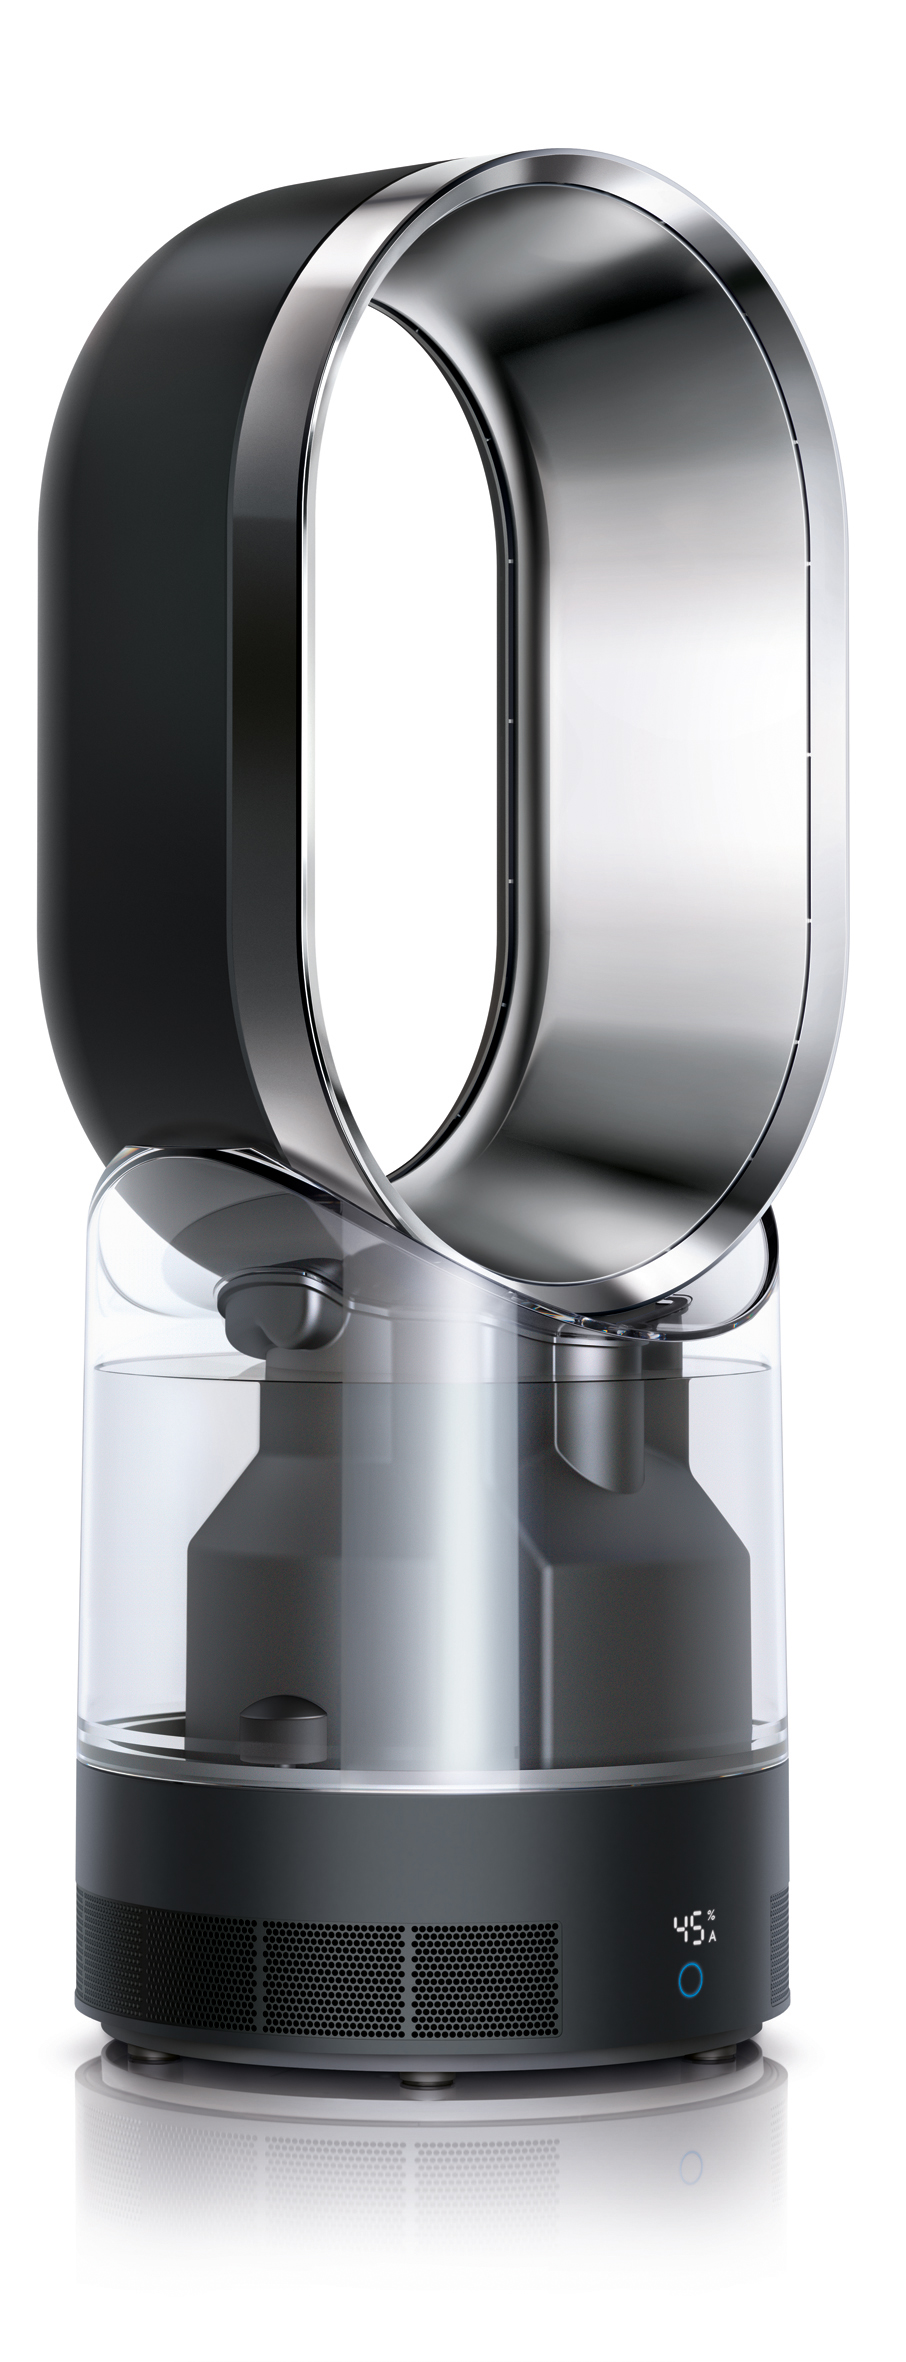 Dyson Luftbefeuchter AM10 Humidifier mit UltravioletCleanse.